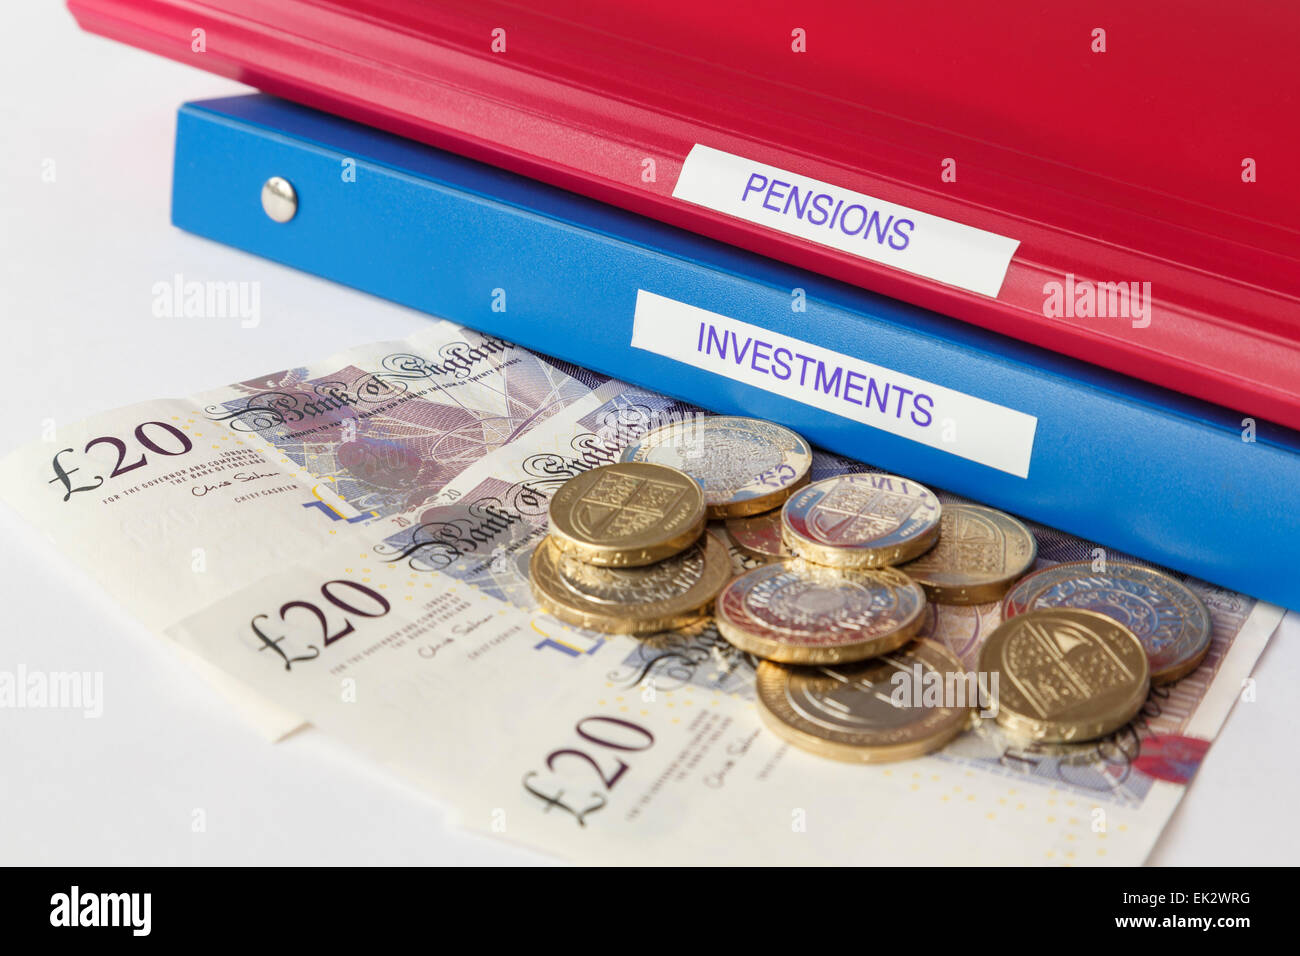 Pensions and Investments portfolios with sterling £20 twenty pound notes and coins. Investing money in stocks - Stock Image